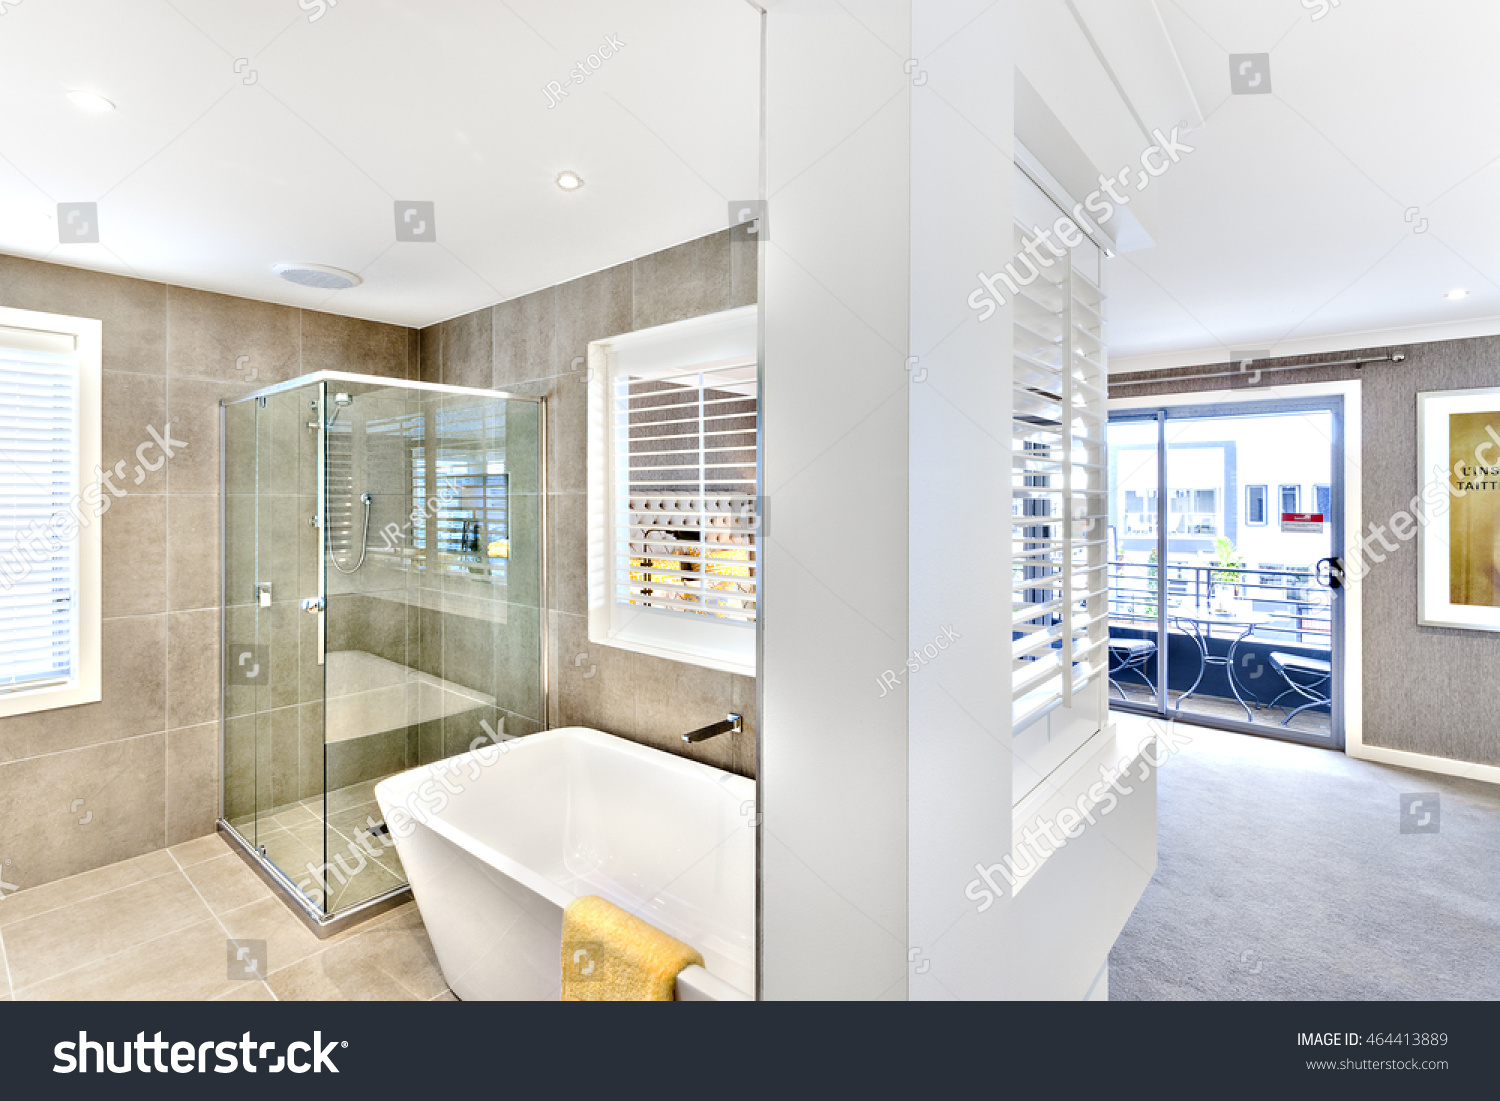 Modern Washroom Attached Hallway Outside Windows Stock Photo ...